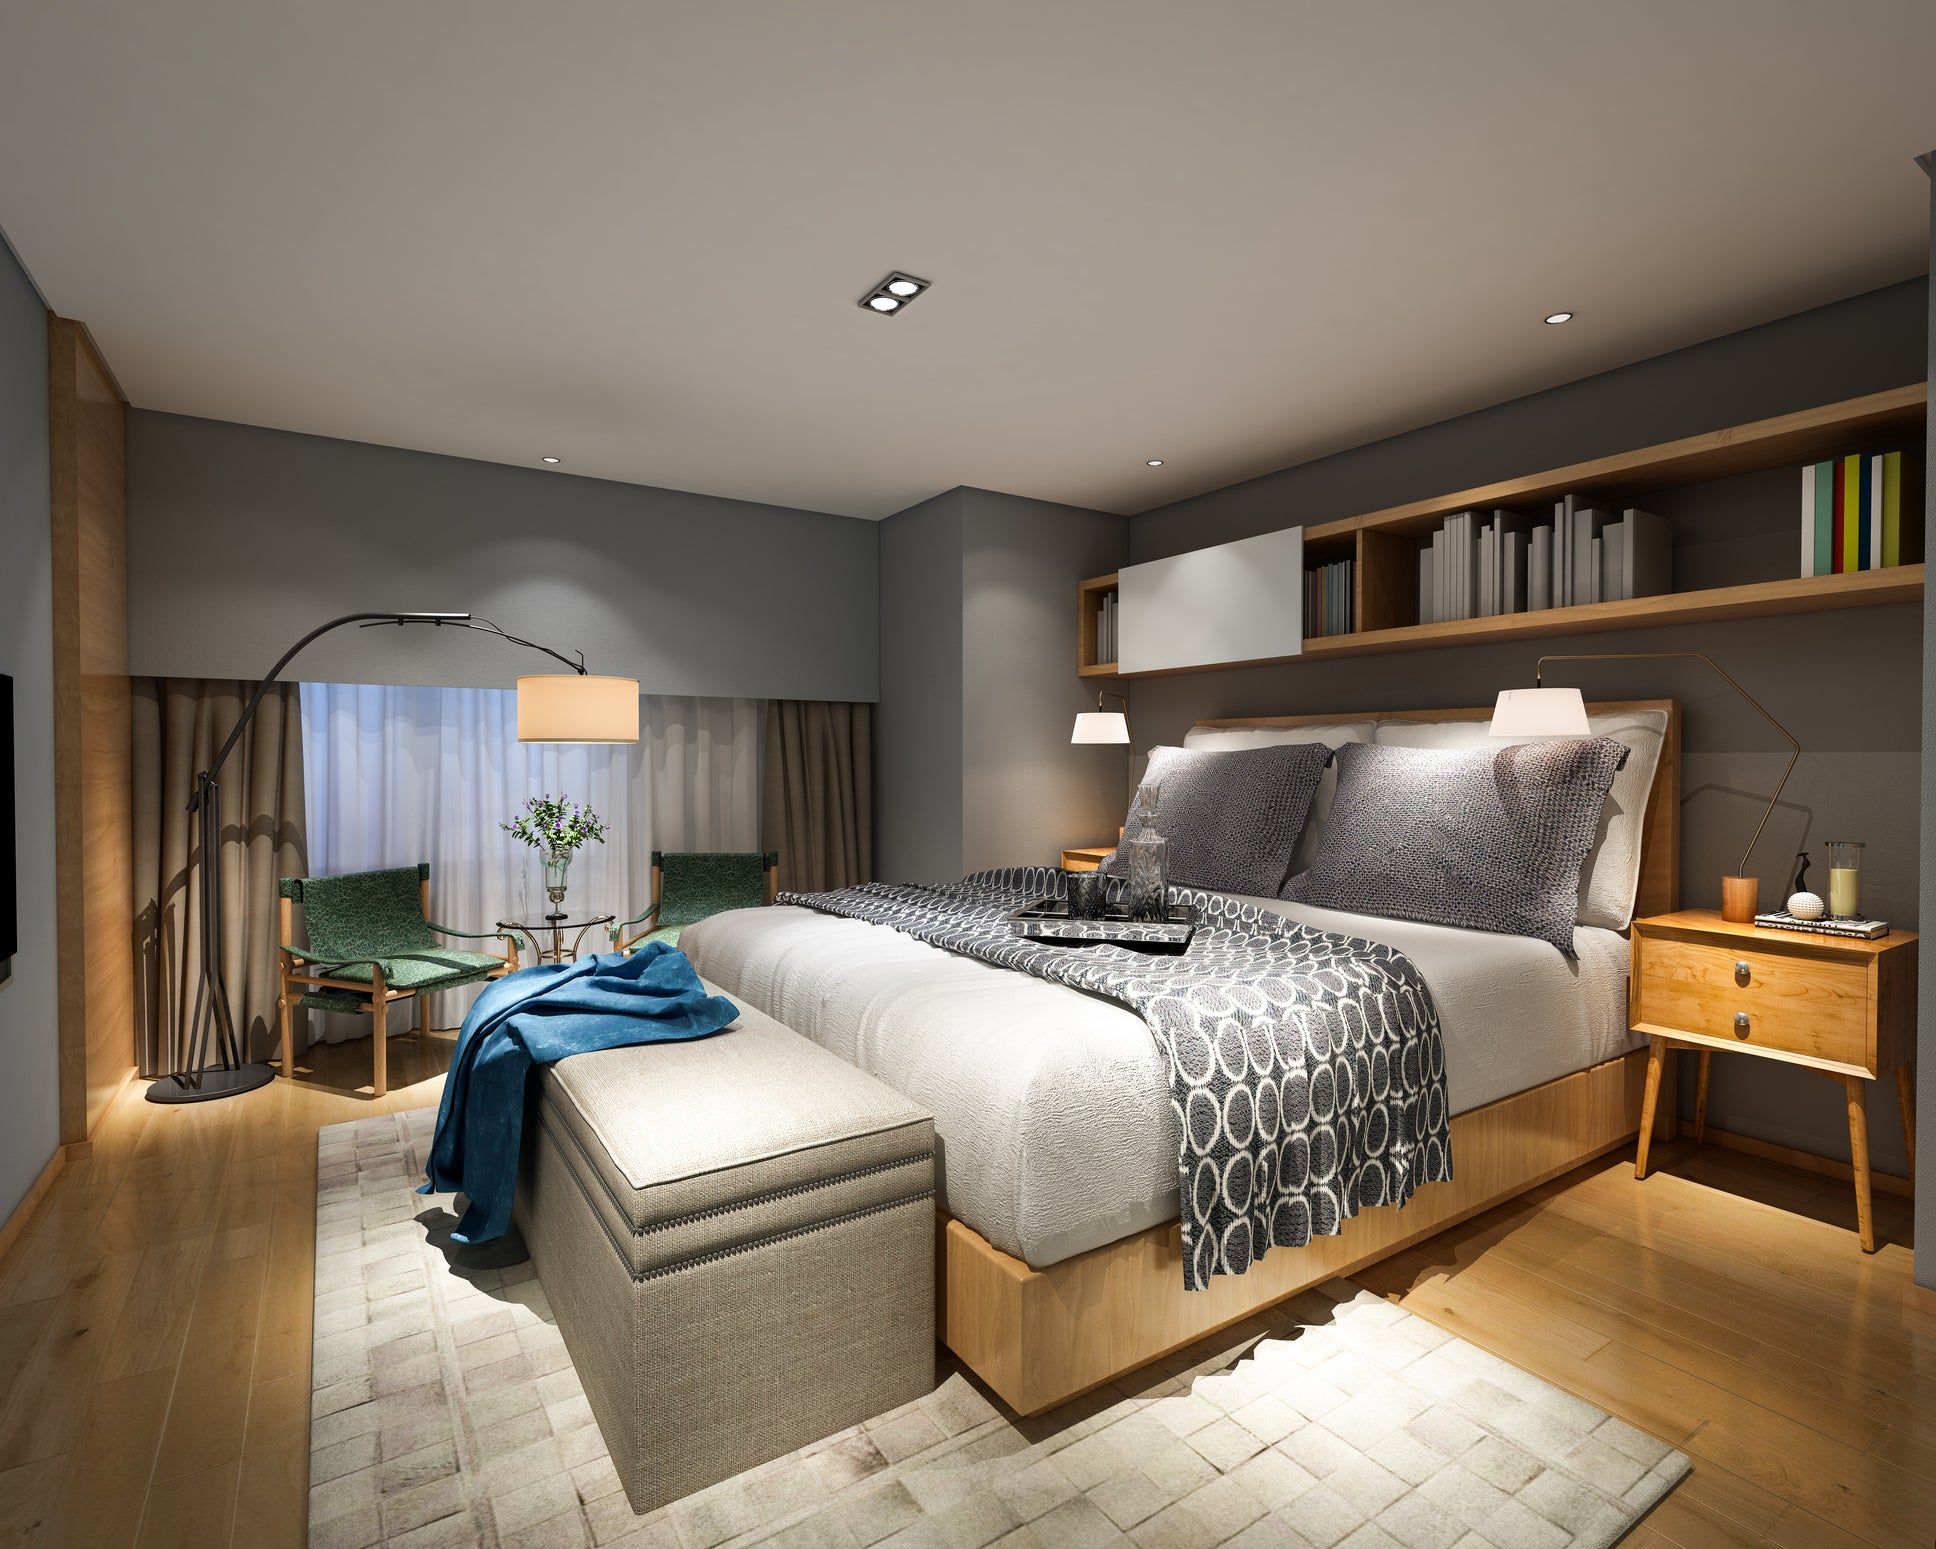 The 7 Best Tips For Designing A Bedroom Millionacres